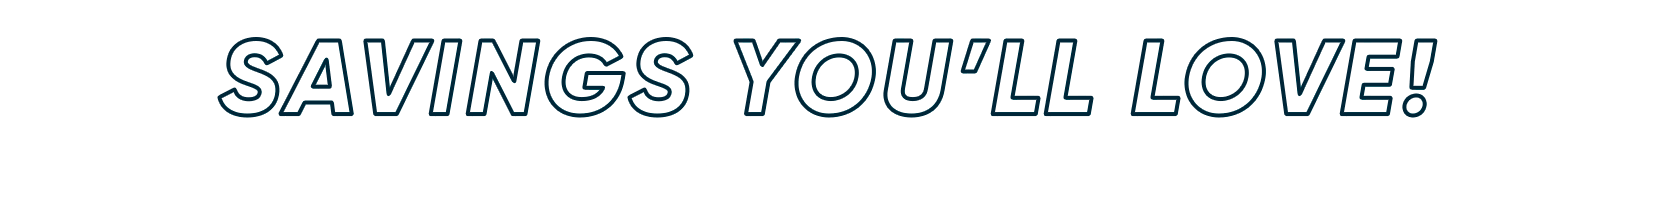 savings you'll love. deals on 100s of styles picked for you